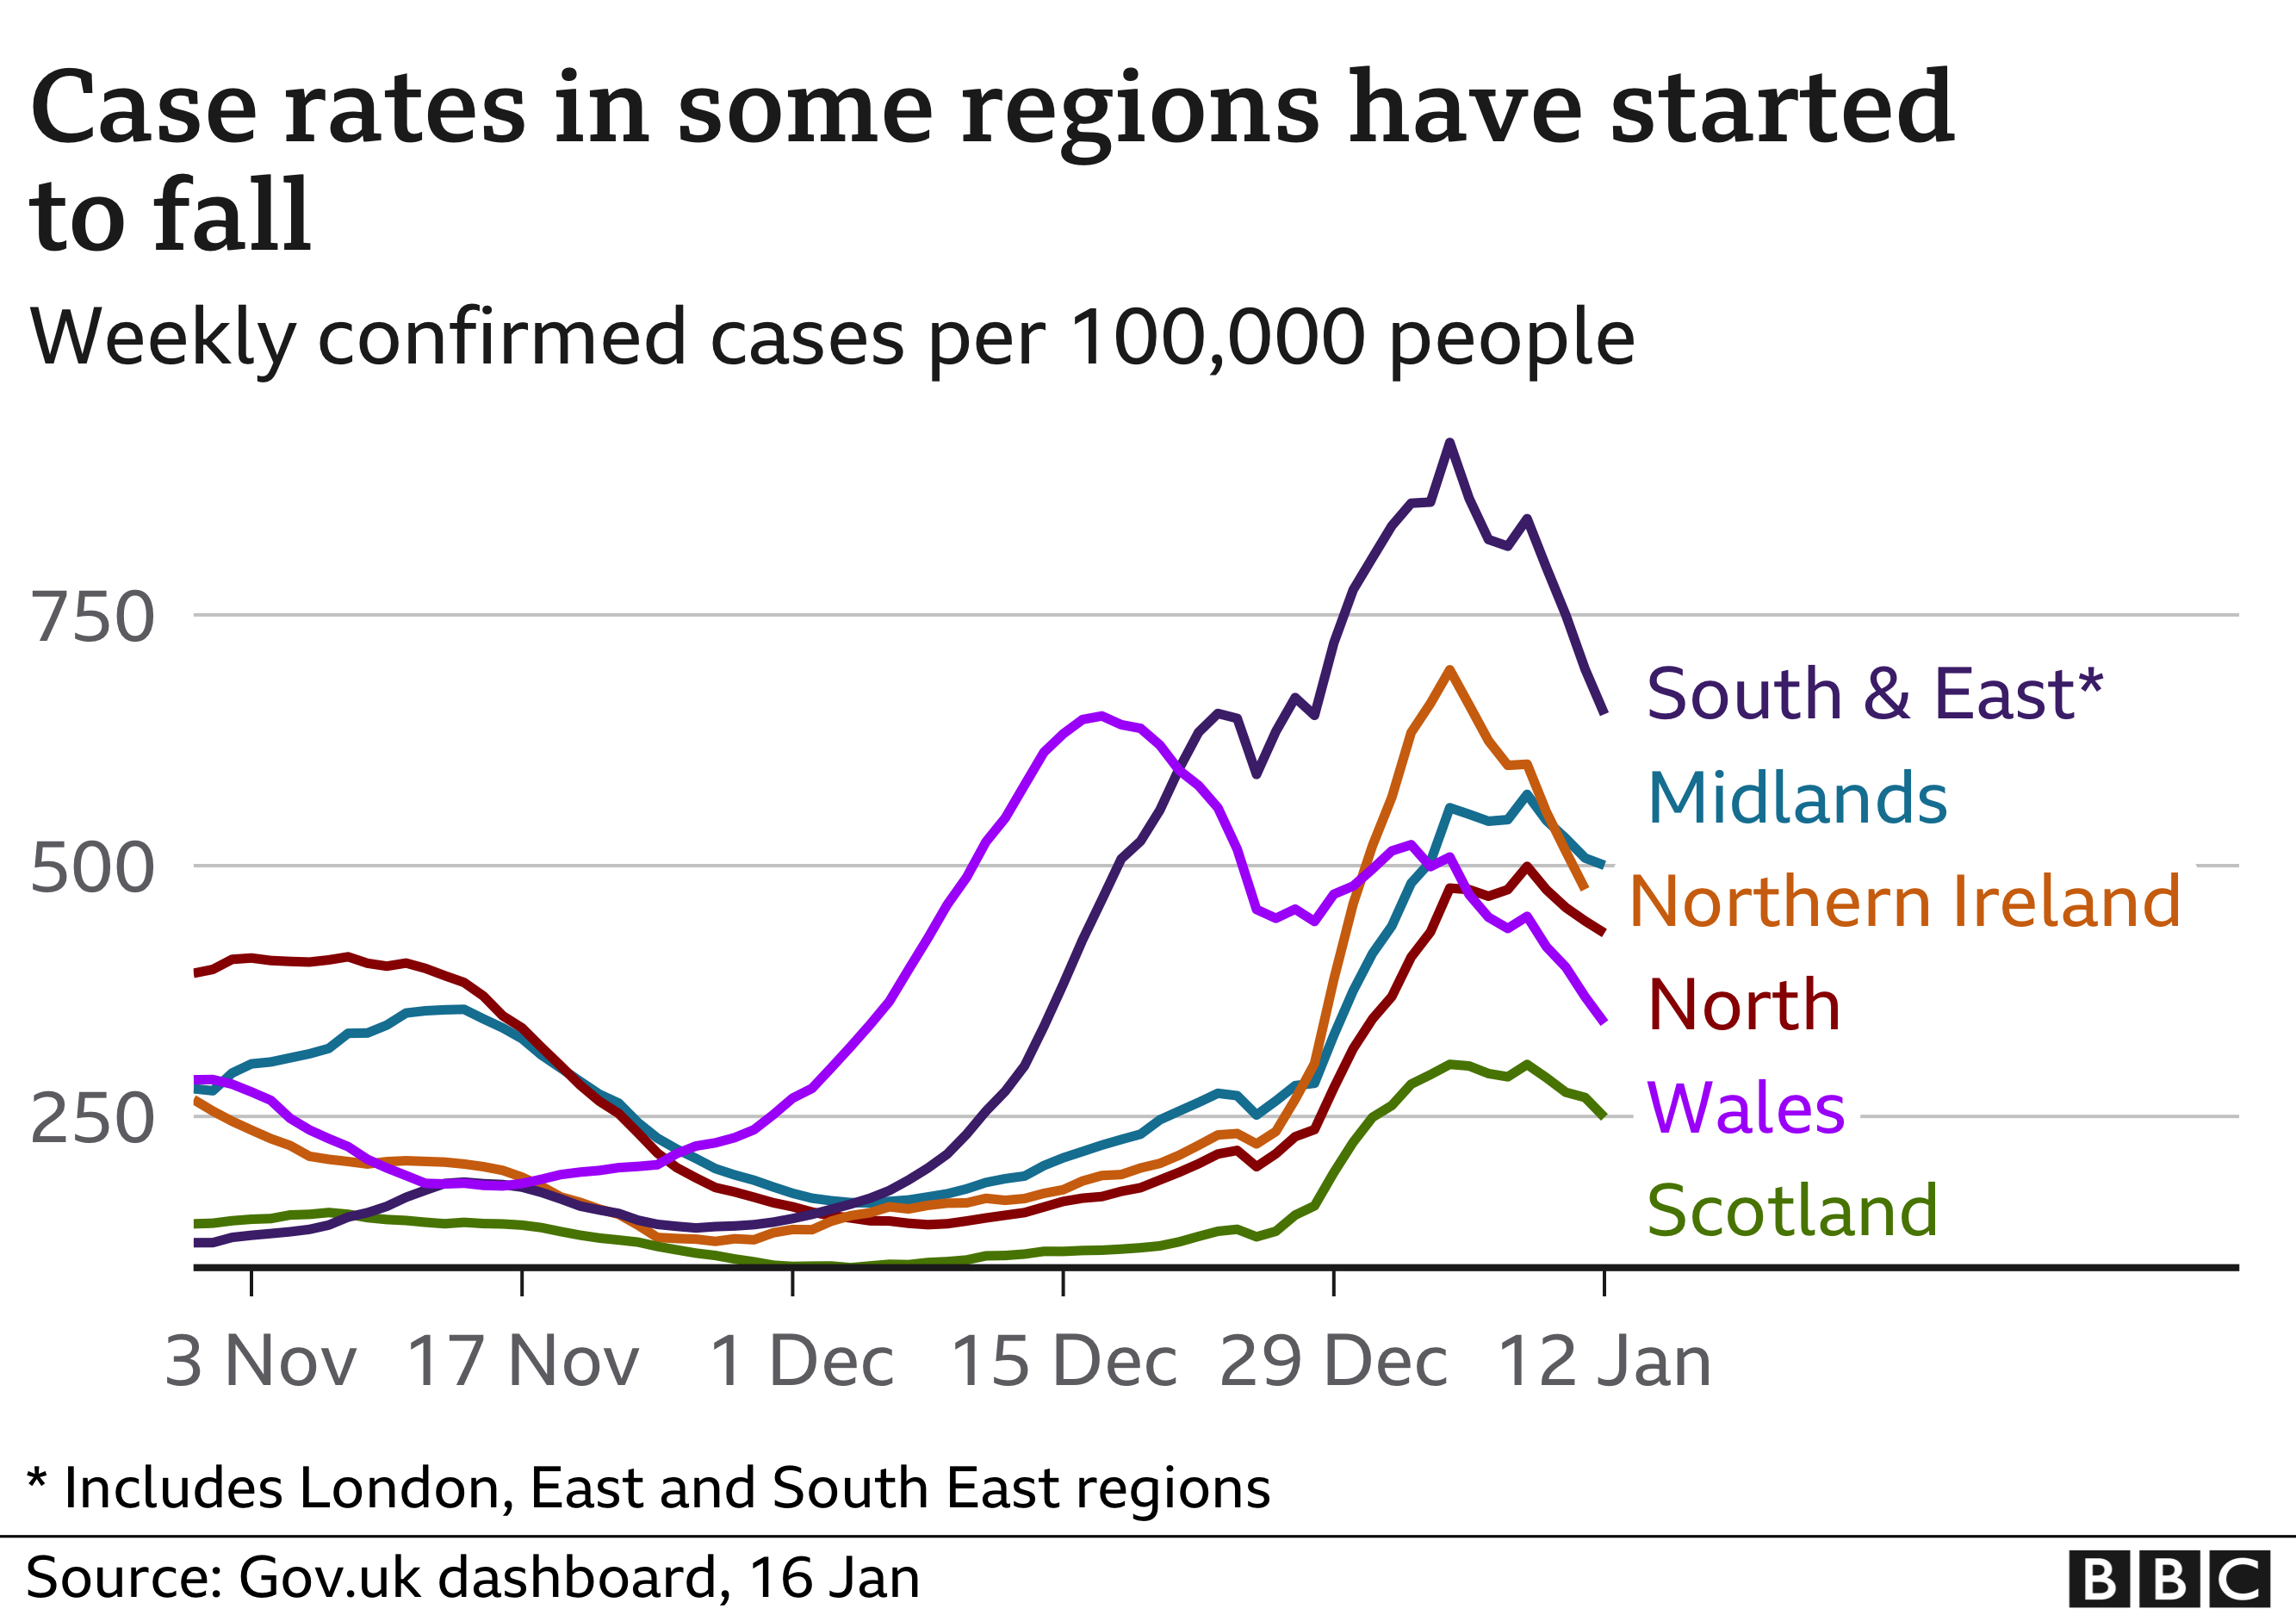 Chart showing early signs that cases may be falling in some regions and nations of the UK